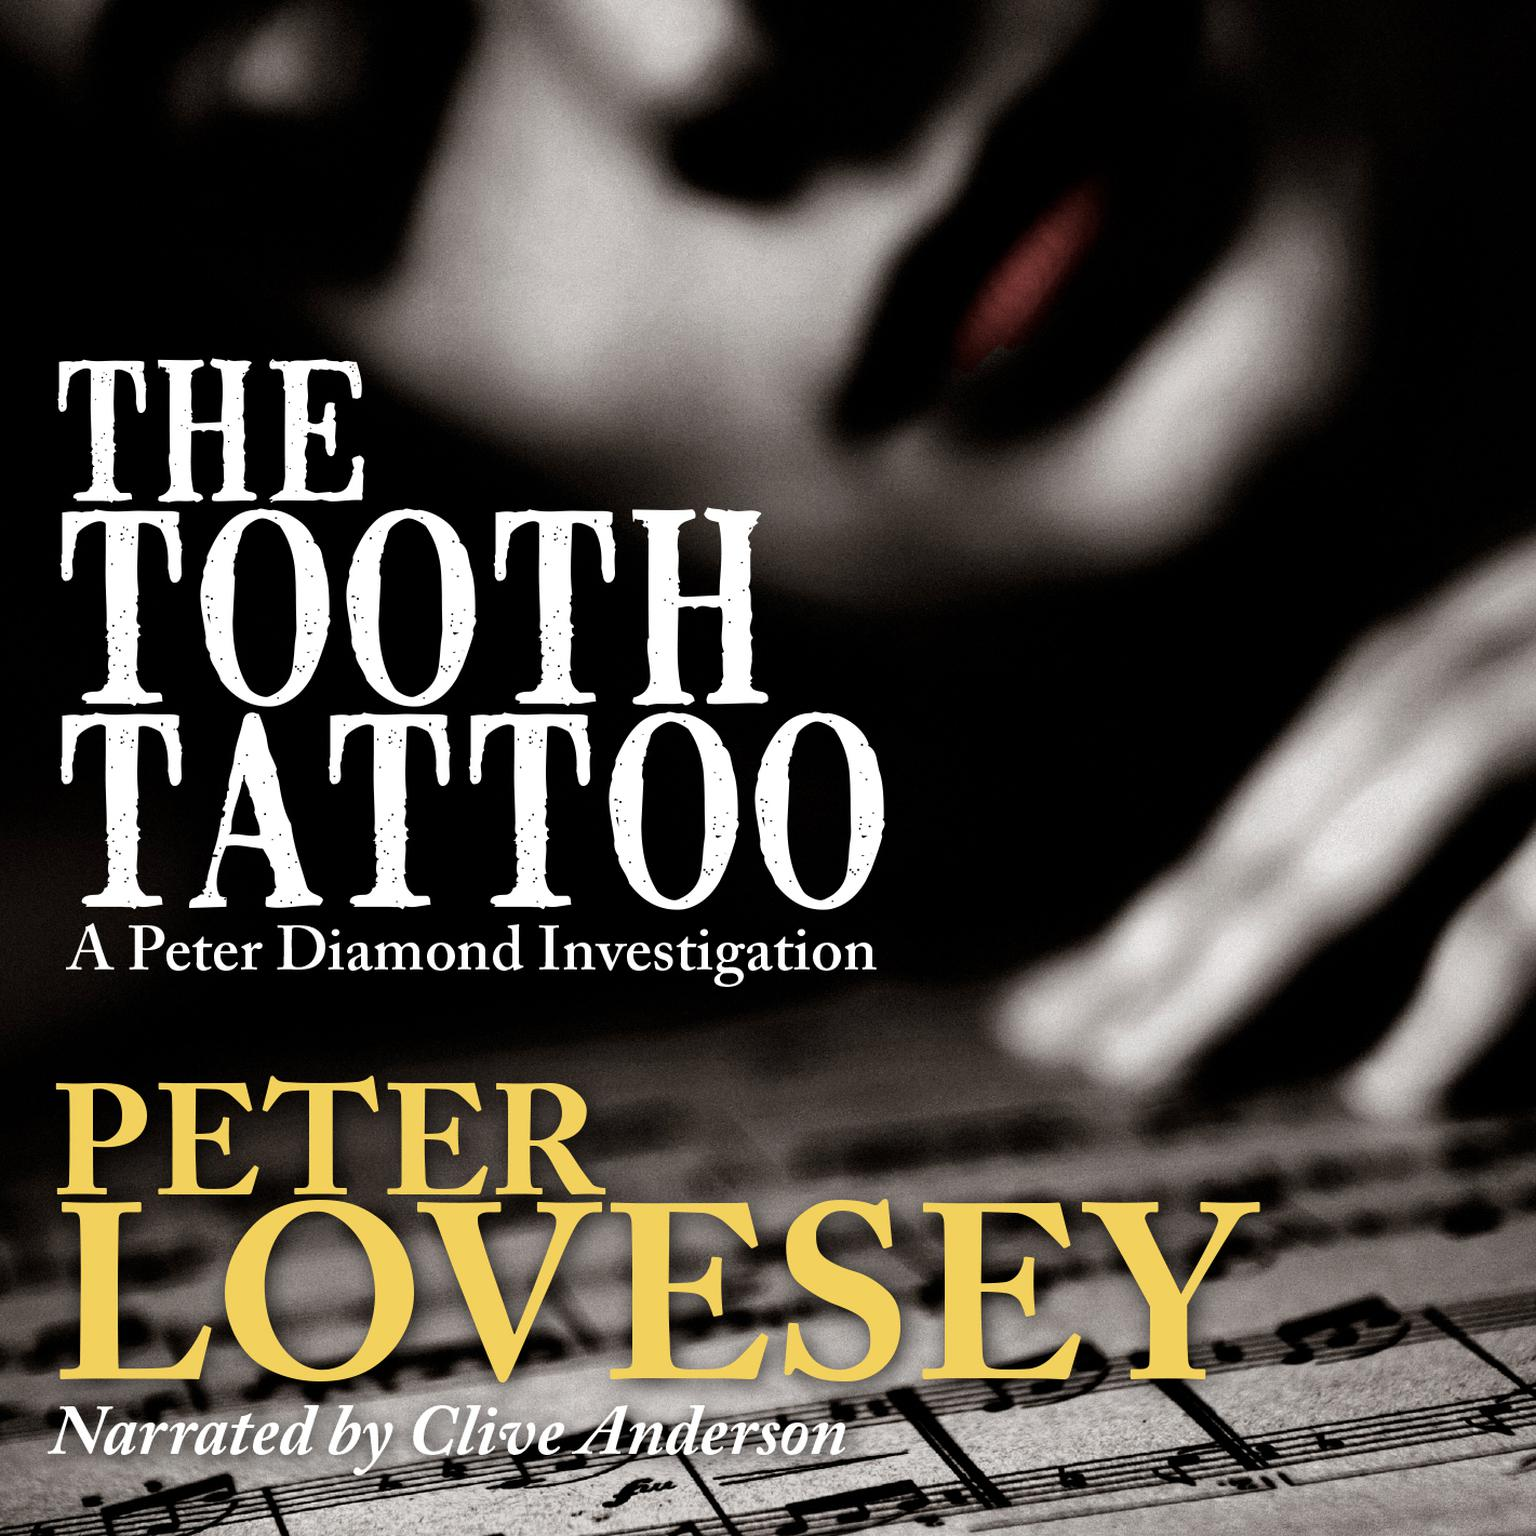 Printable The Tooth Tattoo Audiobook Cover Art